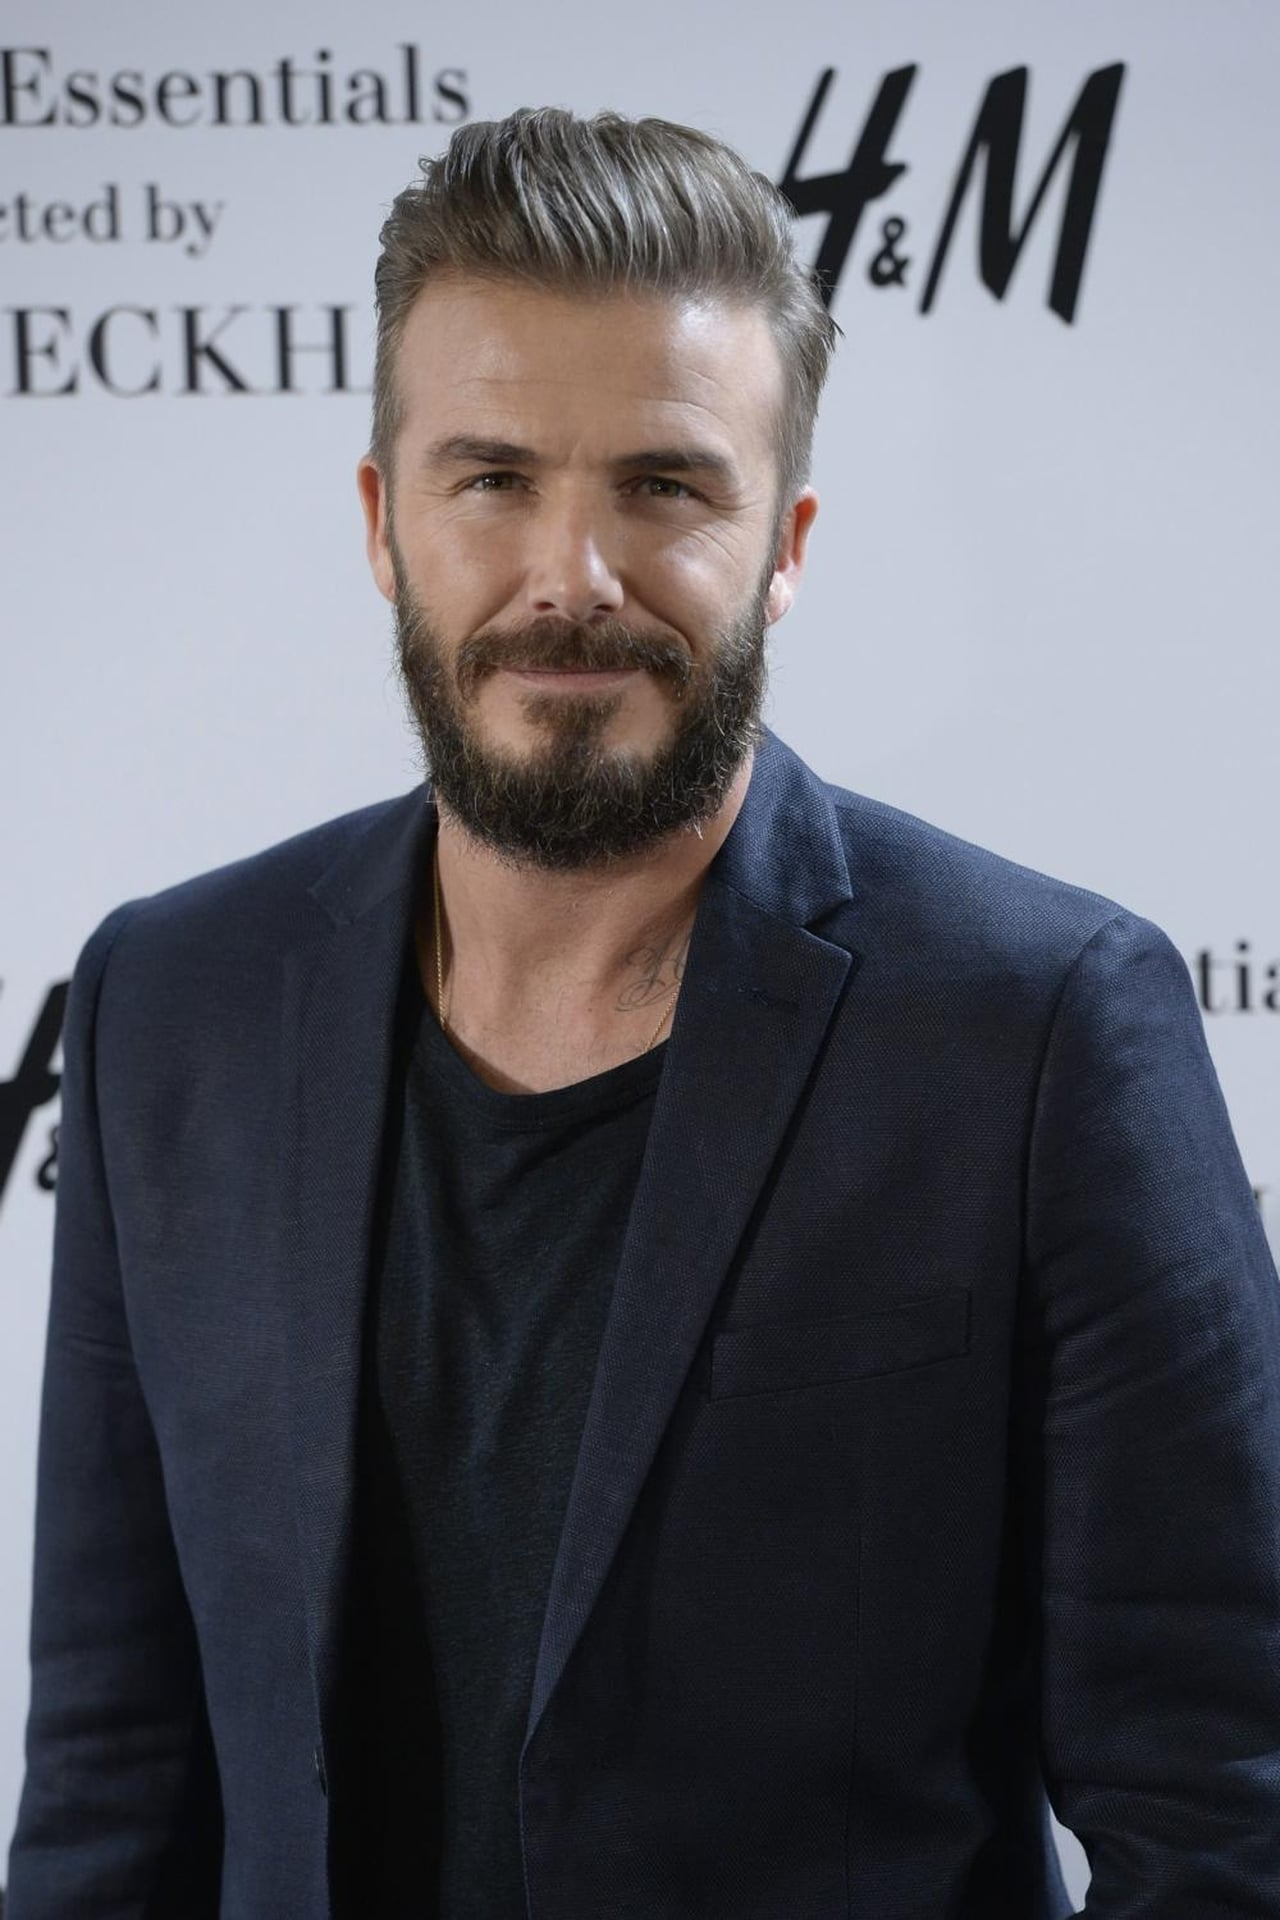 david beckham bio David robert joseph beckham aka david beckham is an english former international football/soccer player read about his career, life events, facts and more.